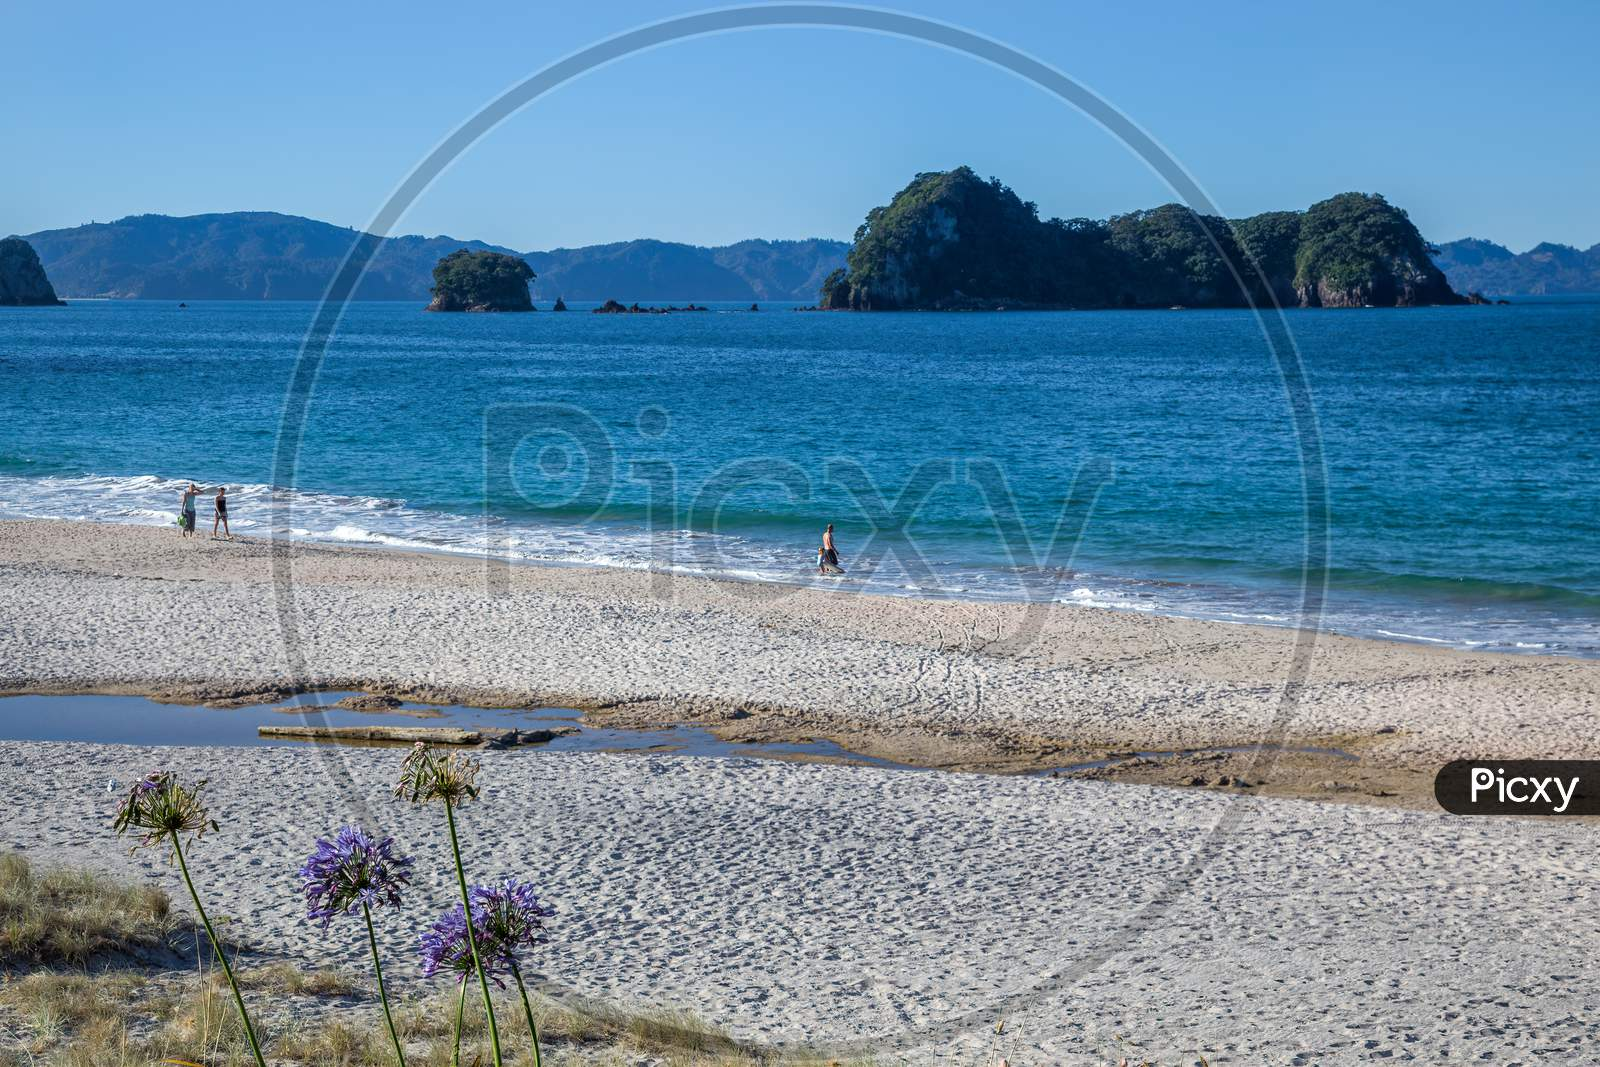 Hahei, New Zealand - February 8 : A Summer Evening At Hahei Beach In New Zealand On February 8, 2012. Four Unidentified People